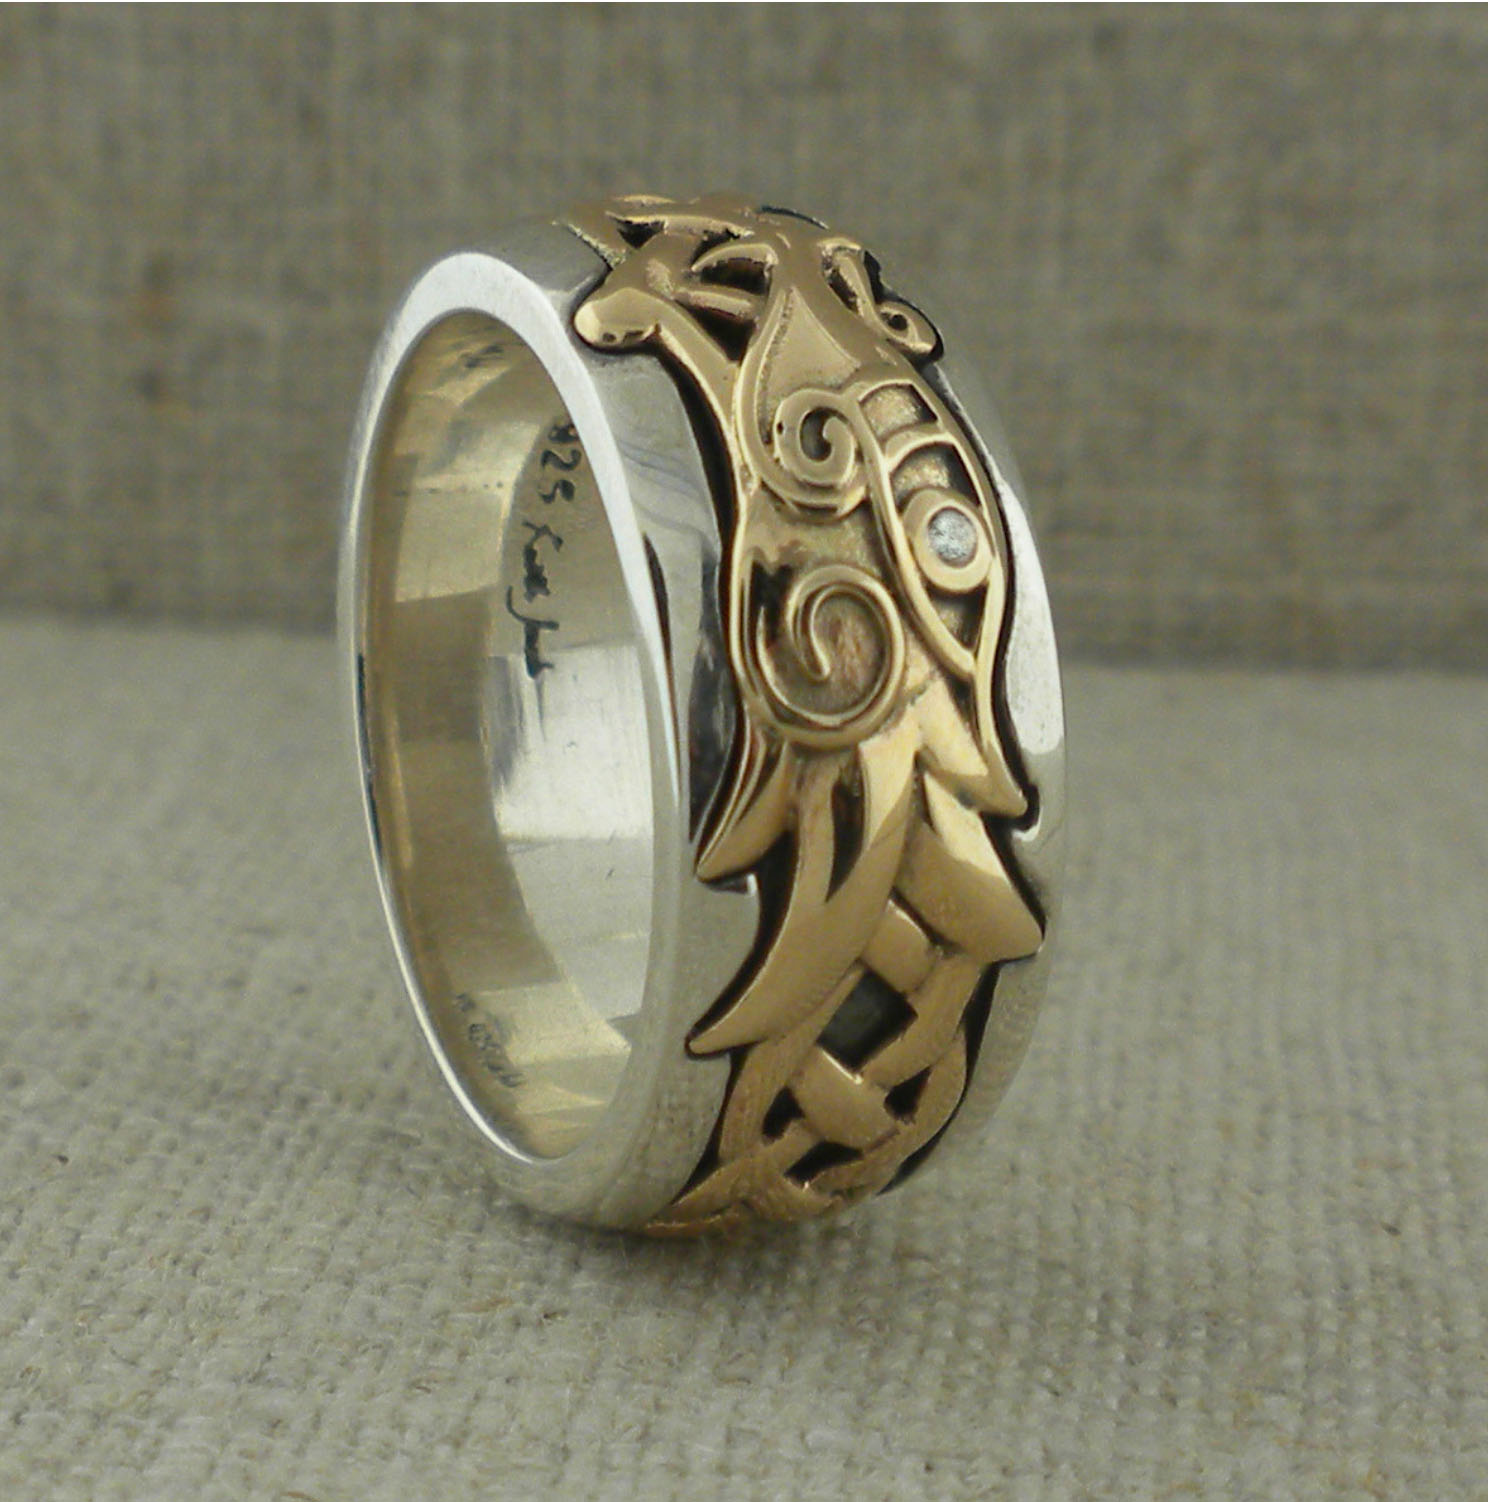 Keith Jack Dragon Wedding Ring Unique Celtic Wedding Rings